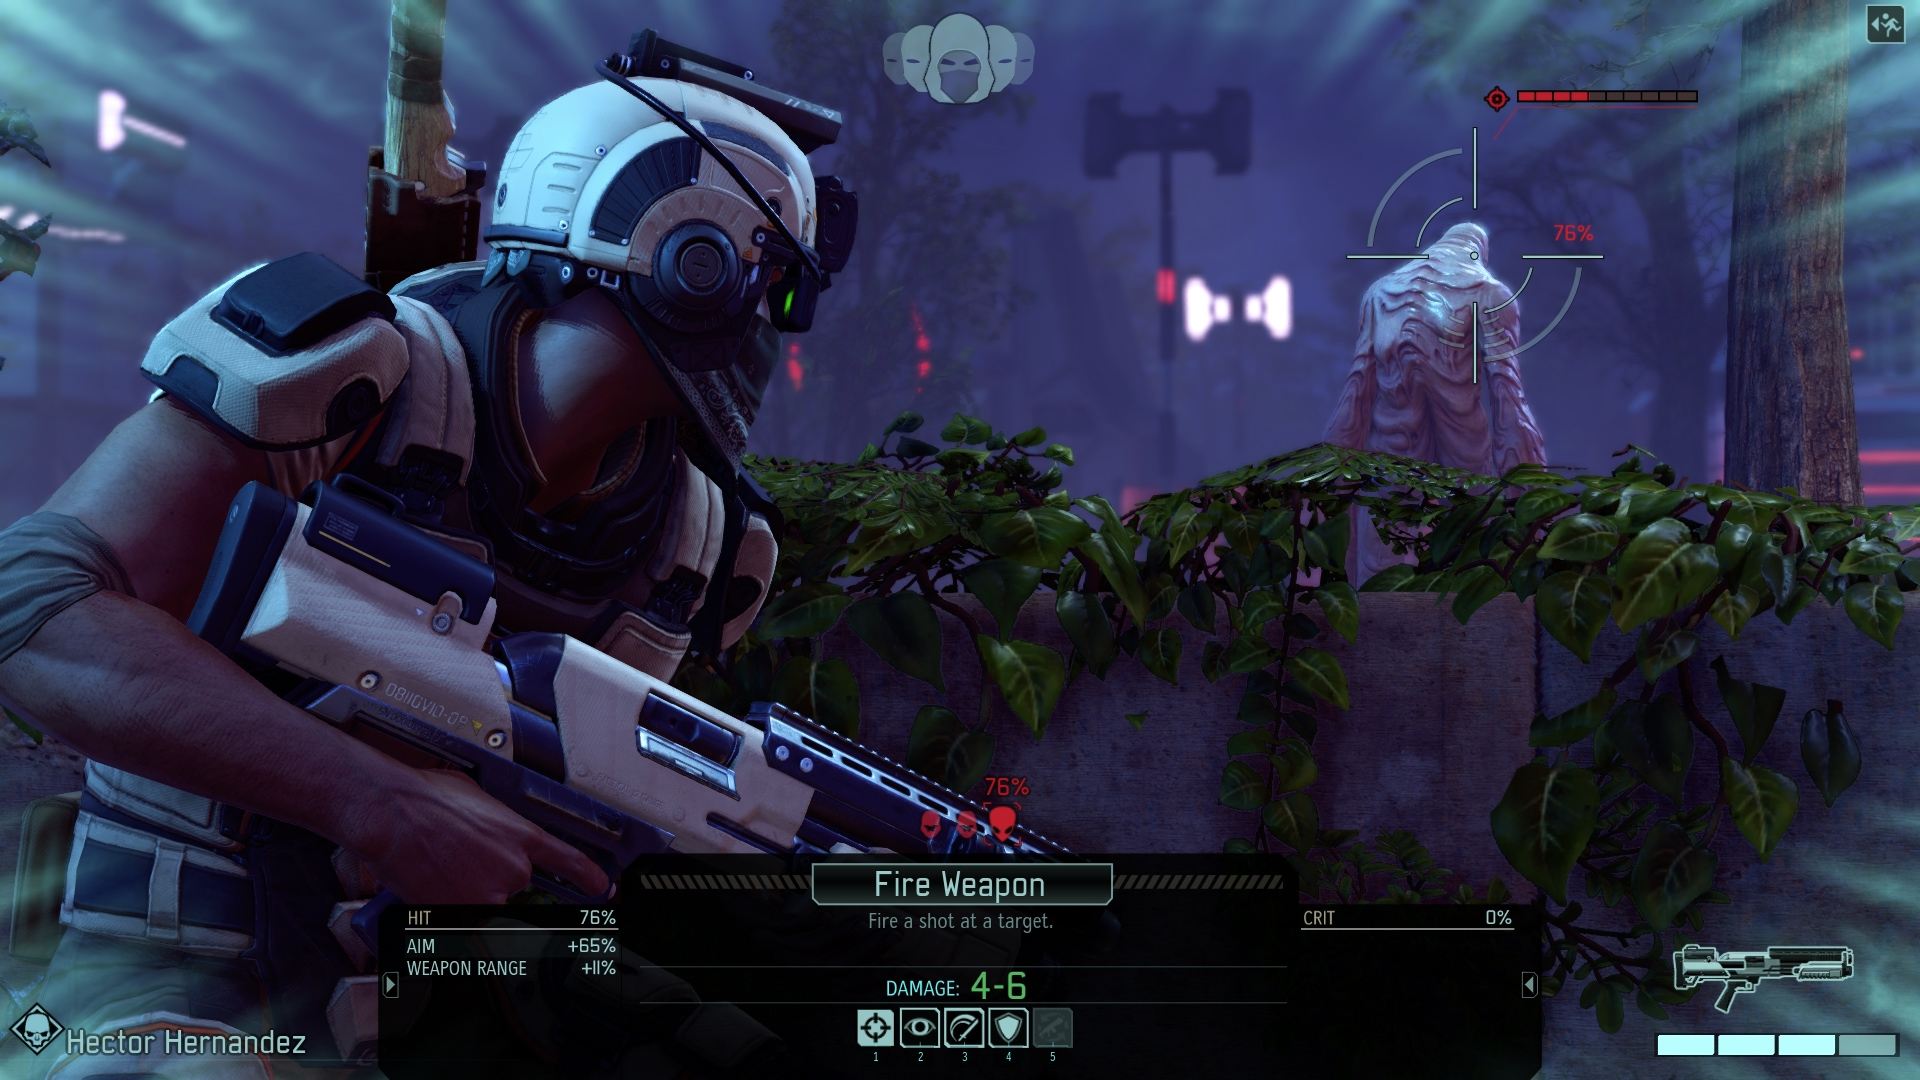 A screenshot of XCOM 2 where your soldier is preparing to fire their weapon on an enemy.